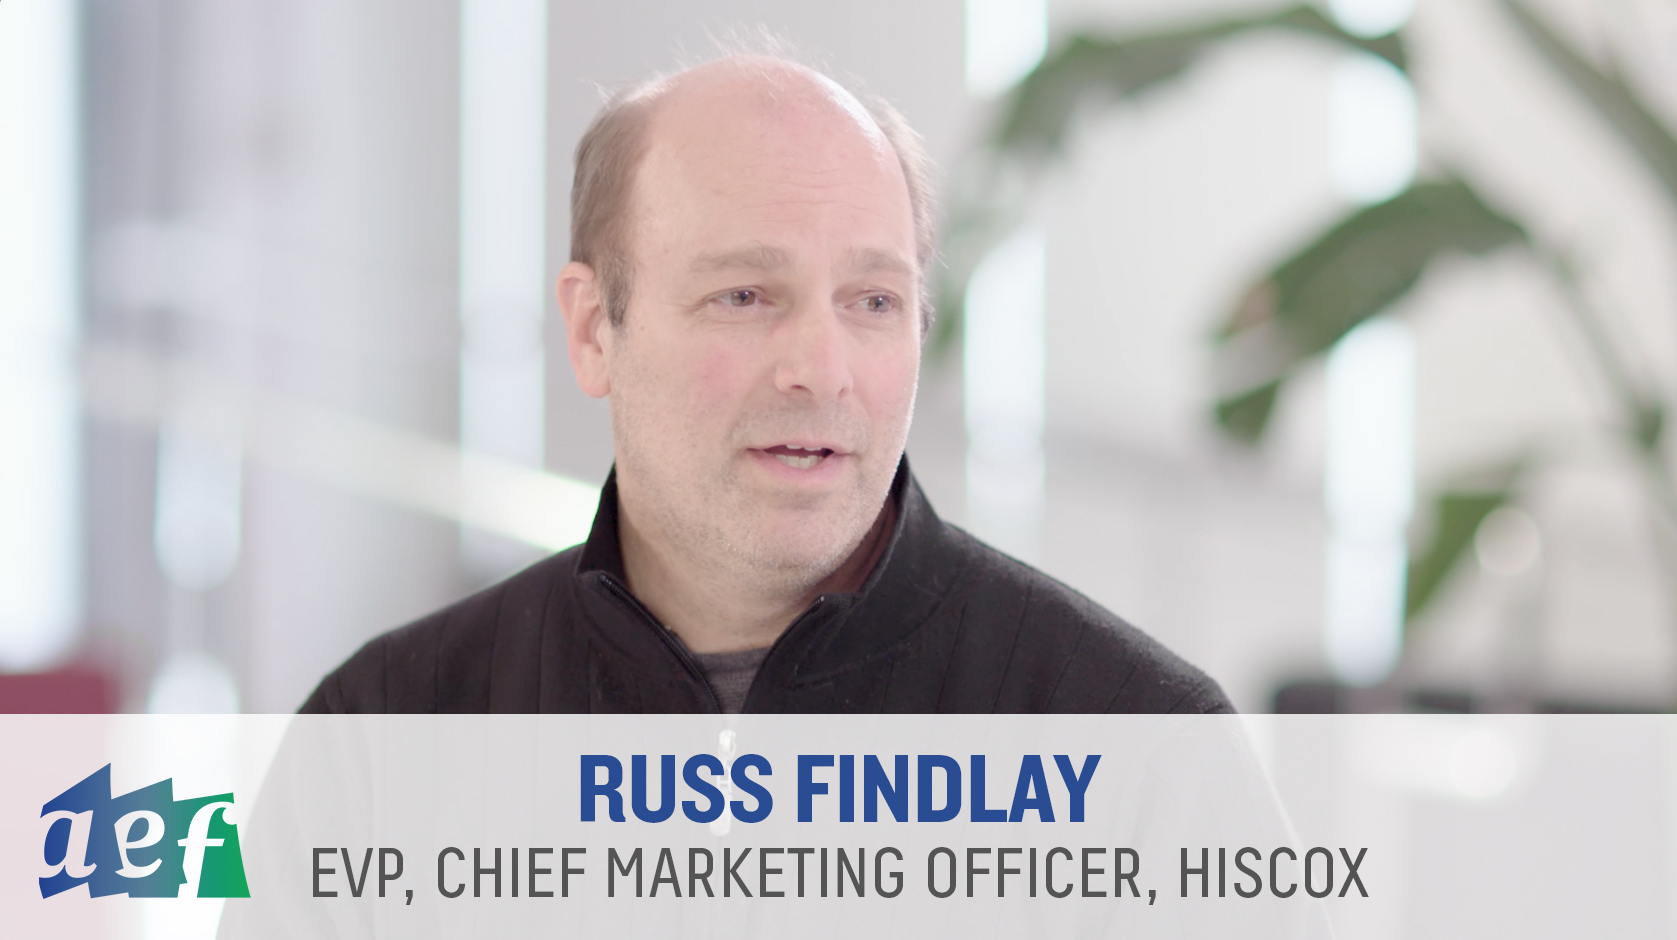 Russ Findlay at Hiscox